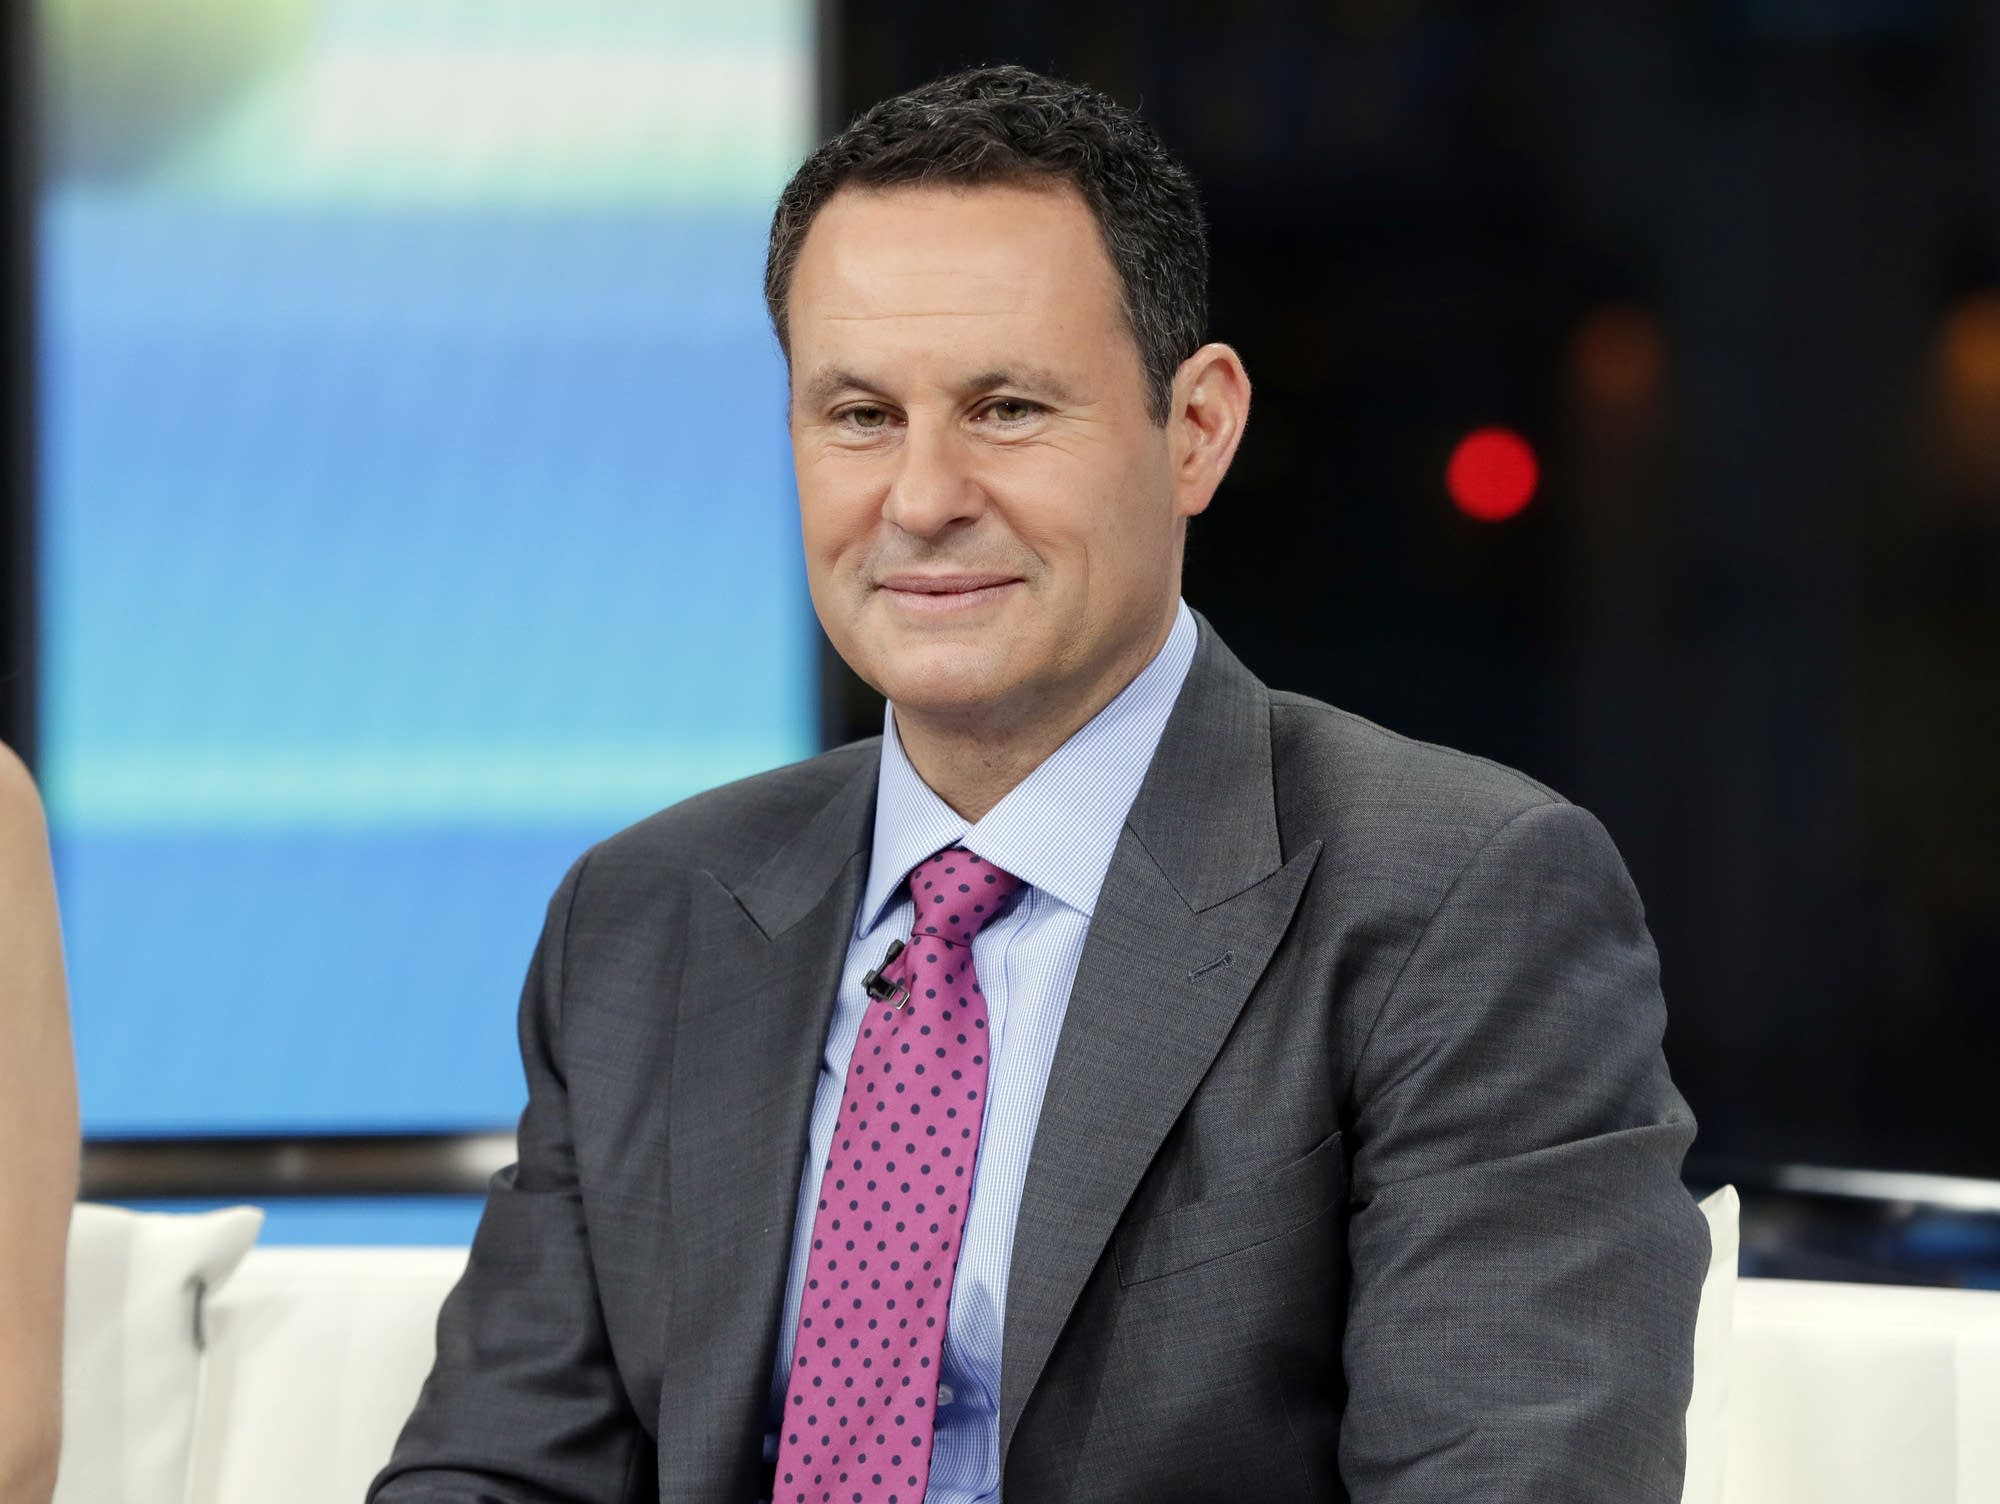 Co-host Brian Kilmeade on the set of